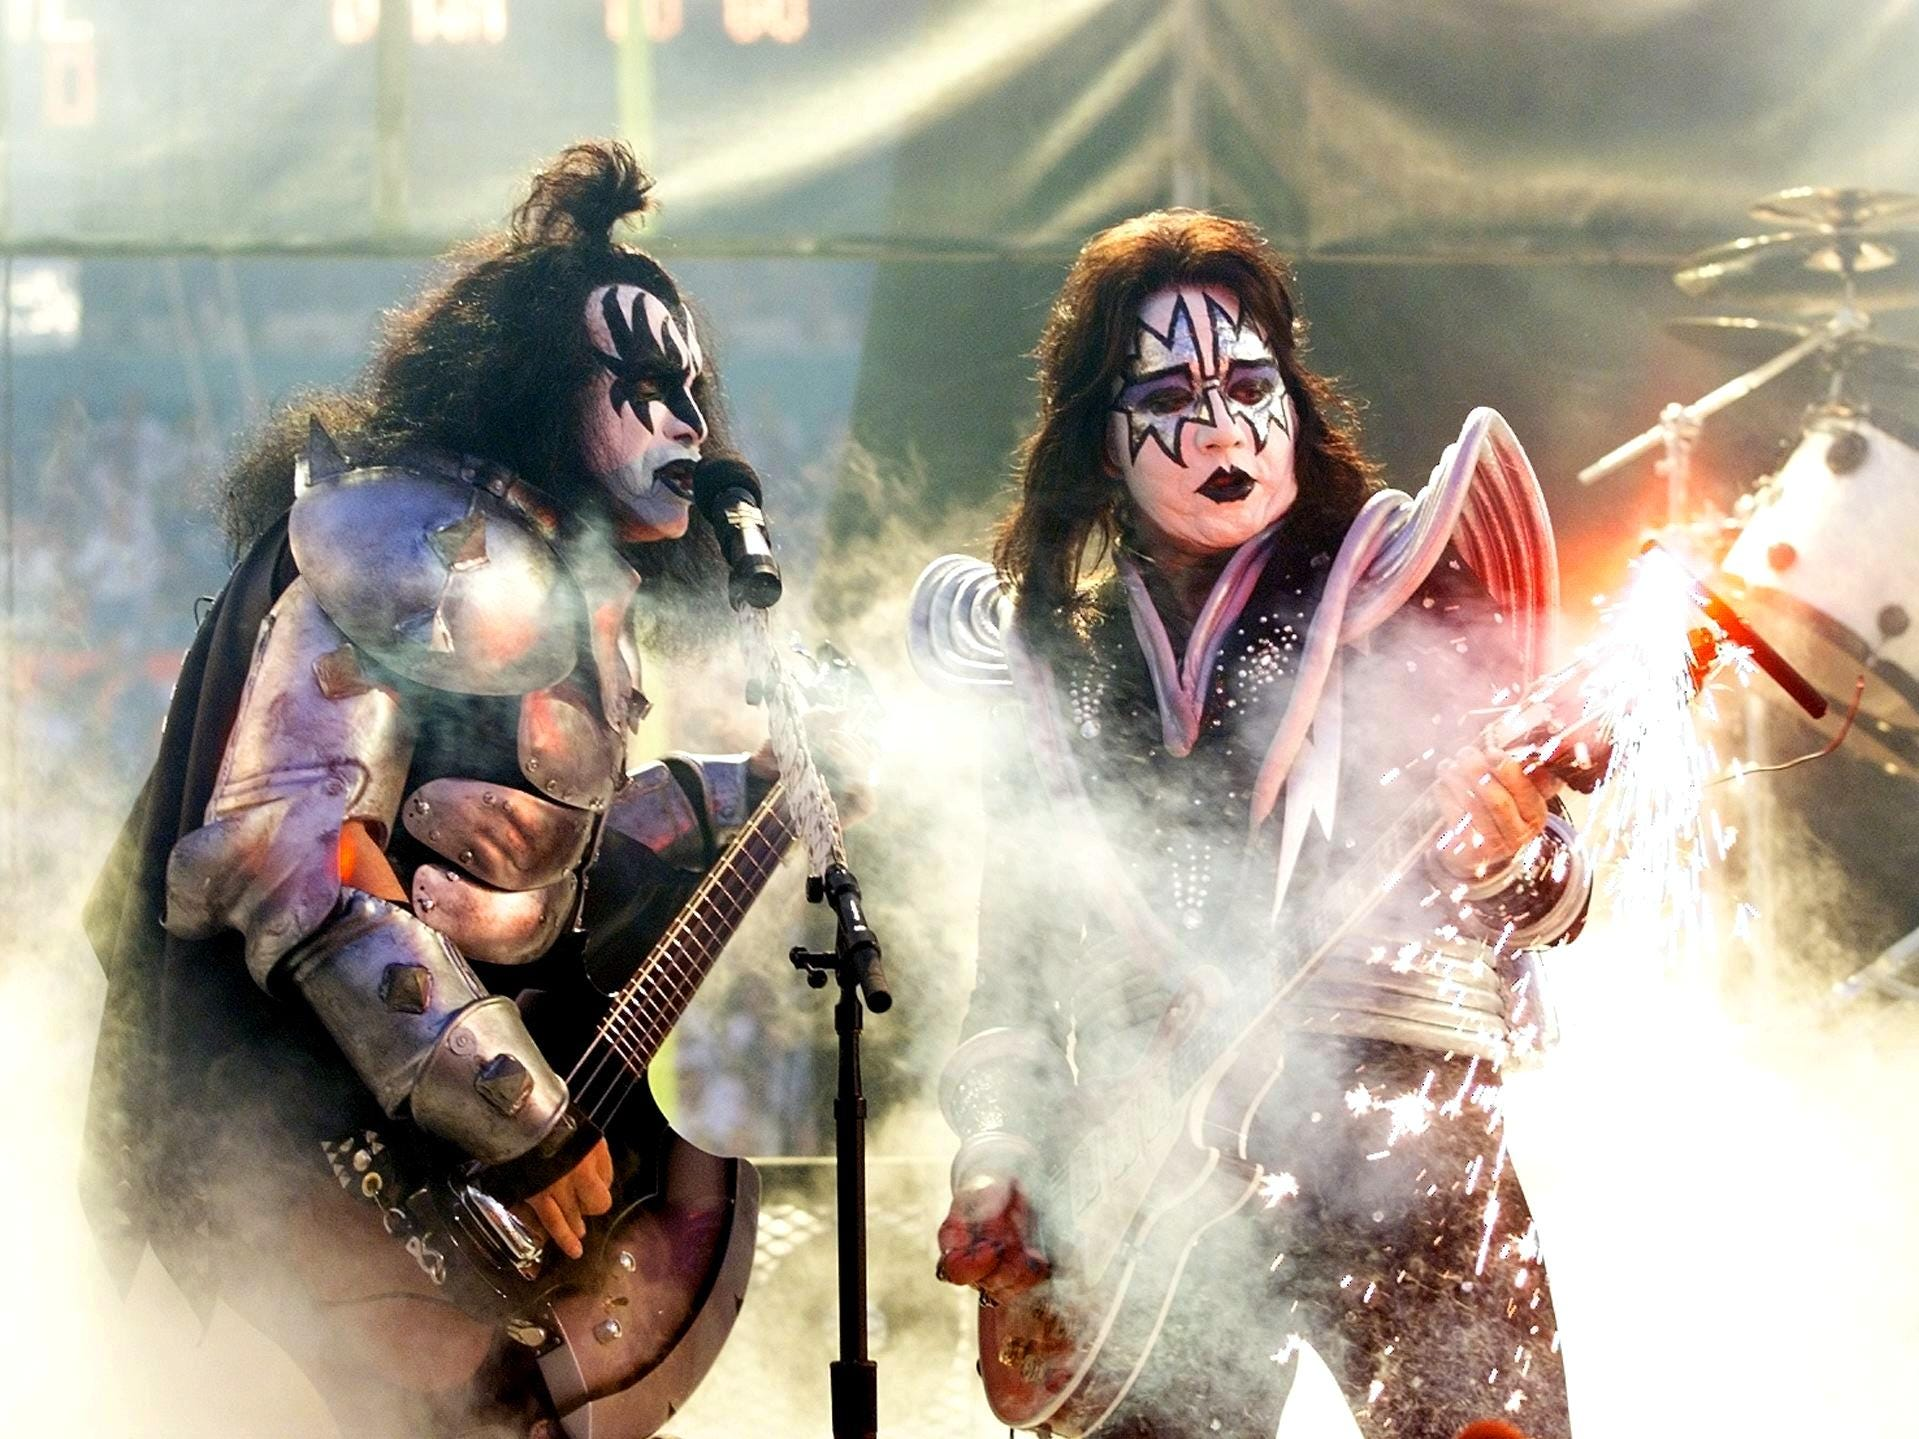 MIAMI: Gene Simmons (left) and Ace Frehley of the rock group Kiss entertain before the start of Super Bowl XXXIII at Pro Player Stadium. The Denver Broncos and Atlanta Falcons are playing for the Lombardi Trophy, symbol of the NFL champions. (ELECTRONIC IMAGE)   AFP PHOTO/JEFF HAYNES (Photo credit should read JEFF HAYNES/AFP/Getty Images)